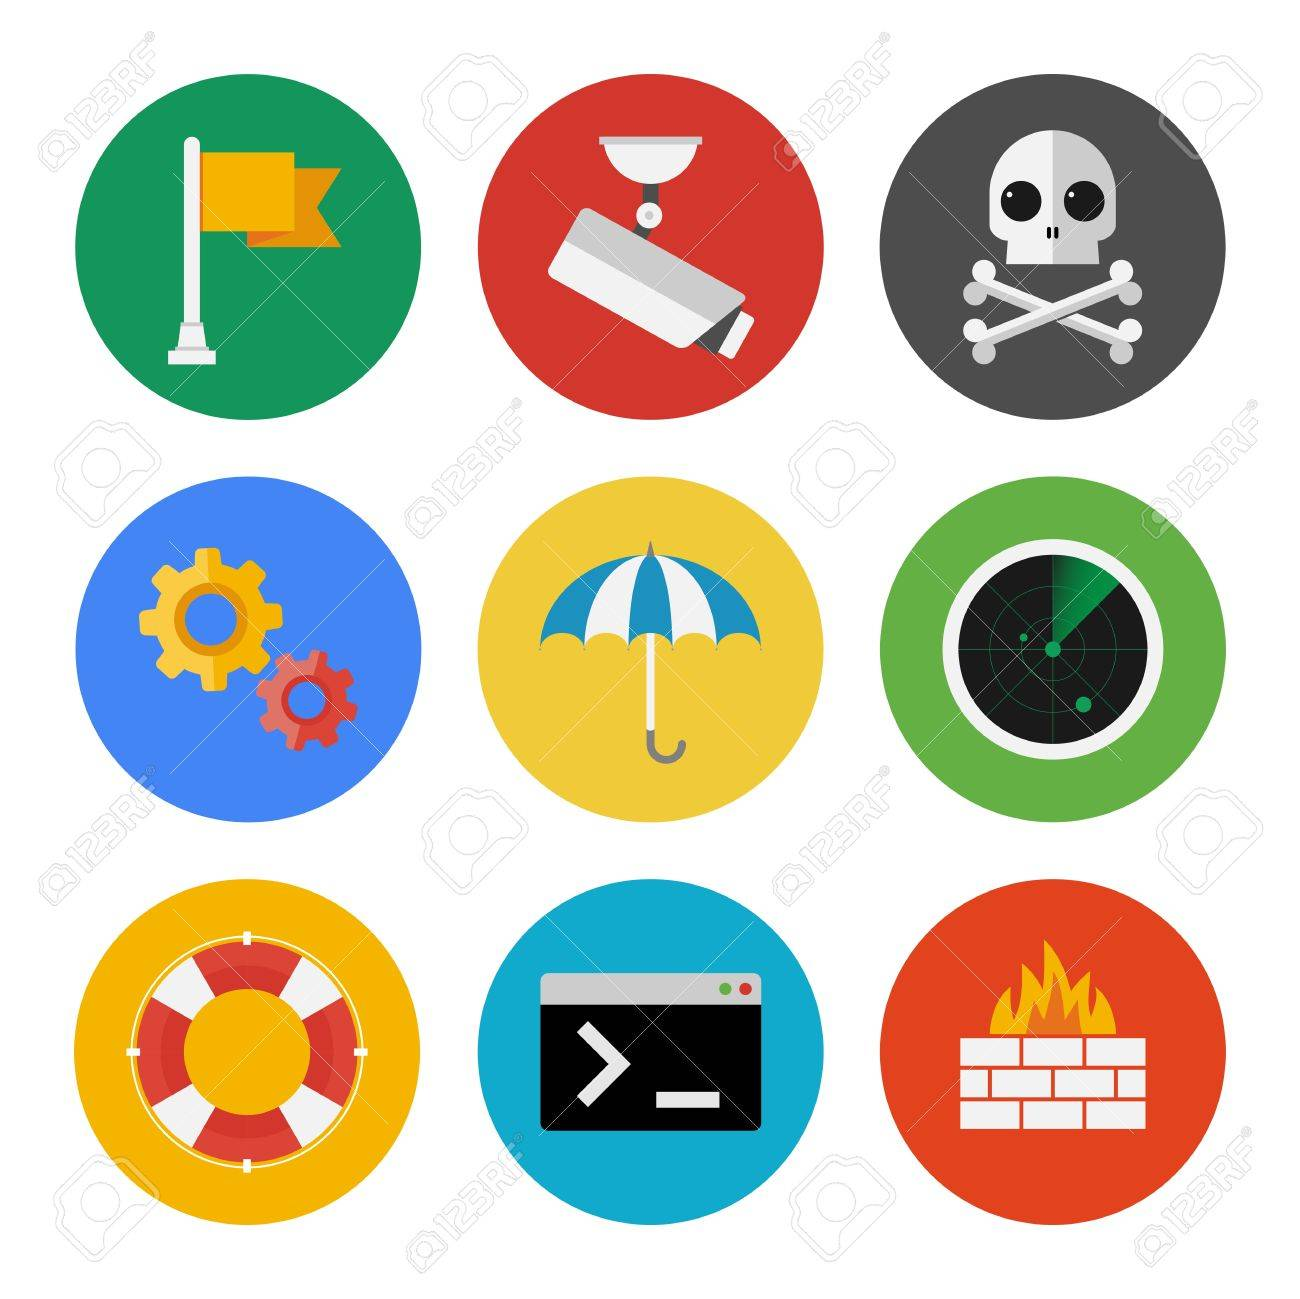 Vector collection of colorful icons in modern flat design style on internet security theme  Isolated on white background Stock Vector - 21376080